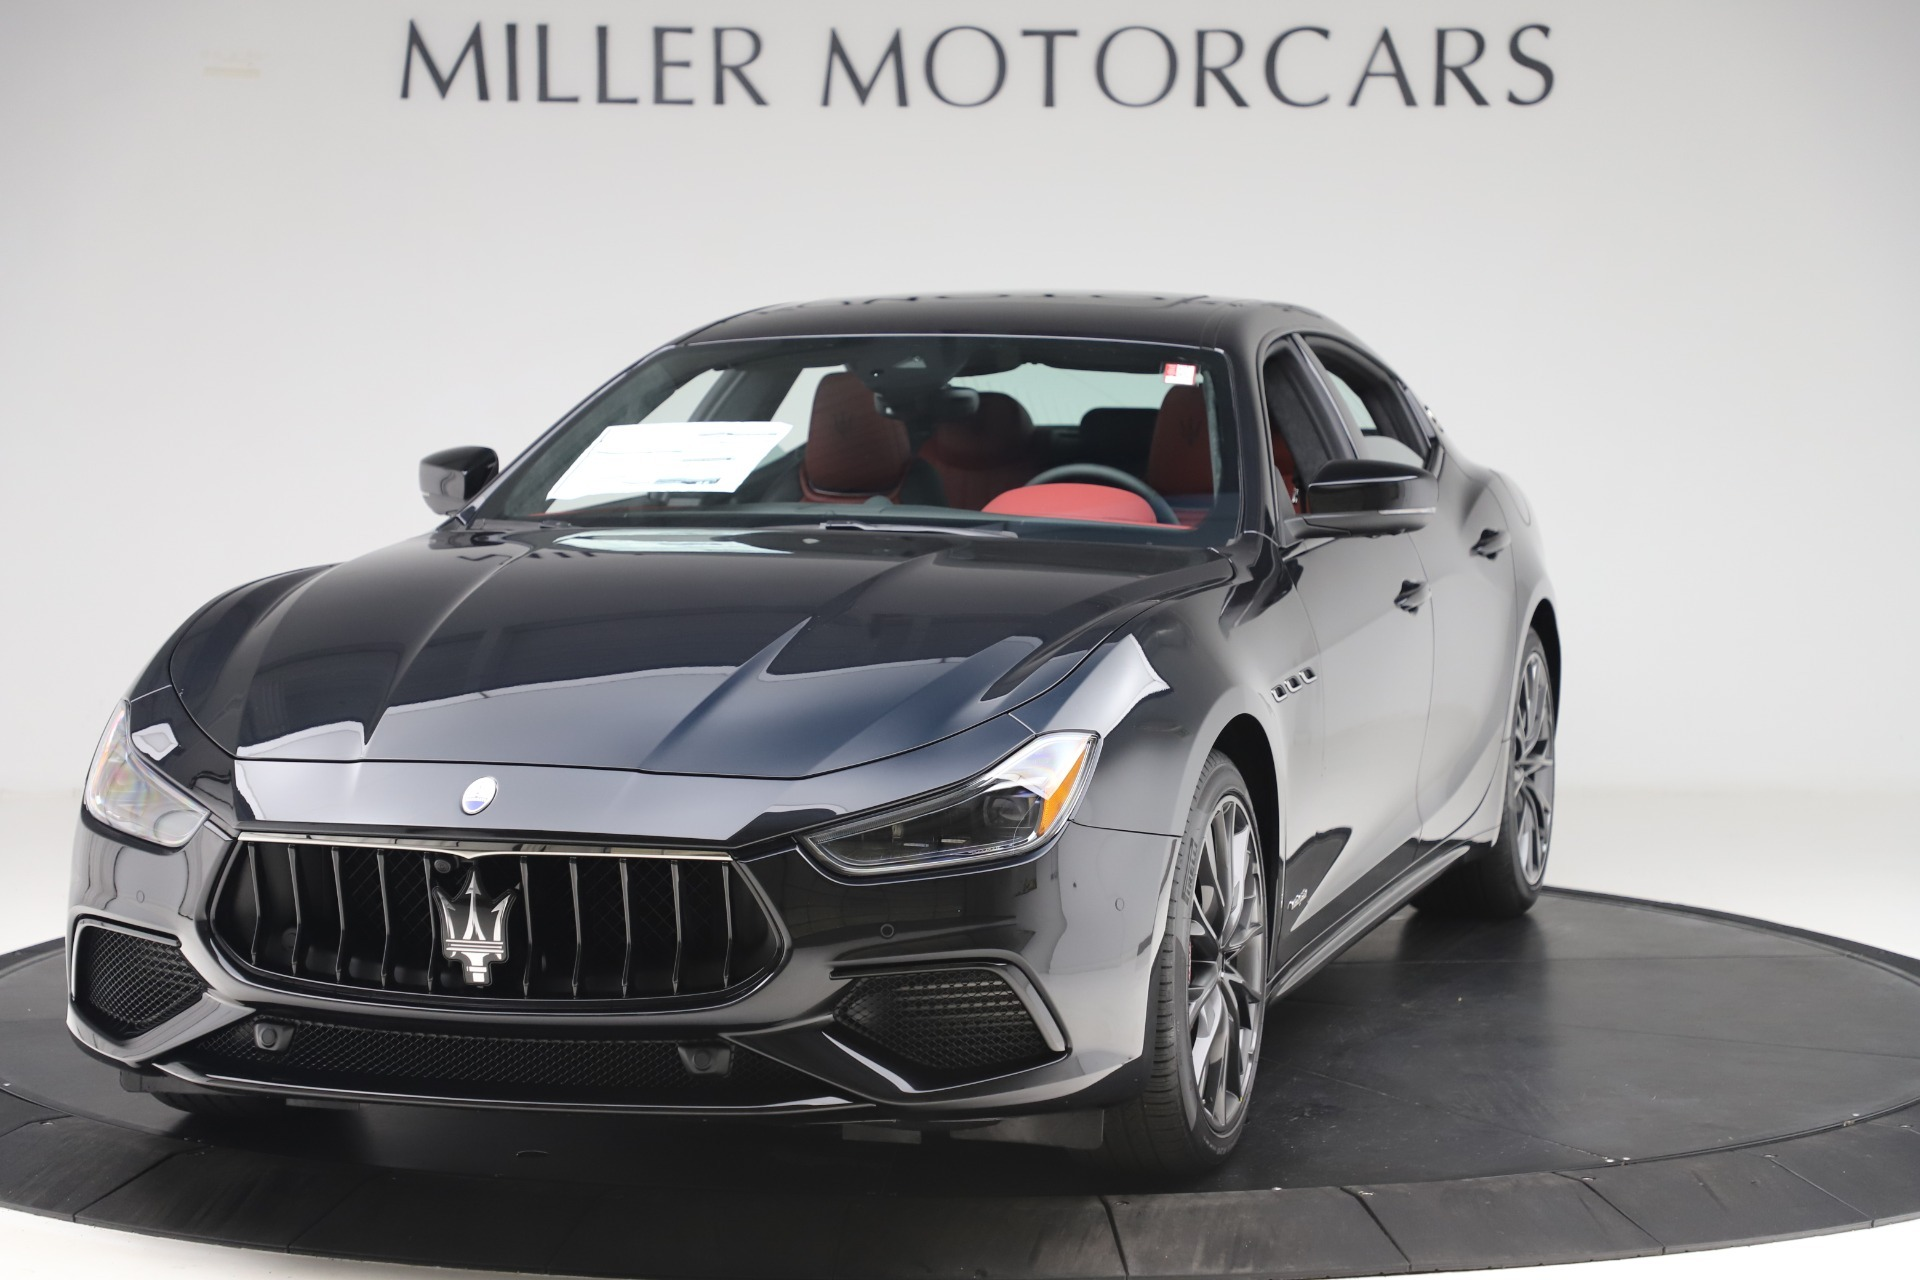 New 2020 Maserati Ghibli S Q4 GranSport for sale $94,785 at Rolls-Royce Motor Cars Greenwich in Greenwich CT 06830 1